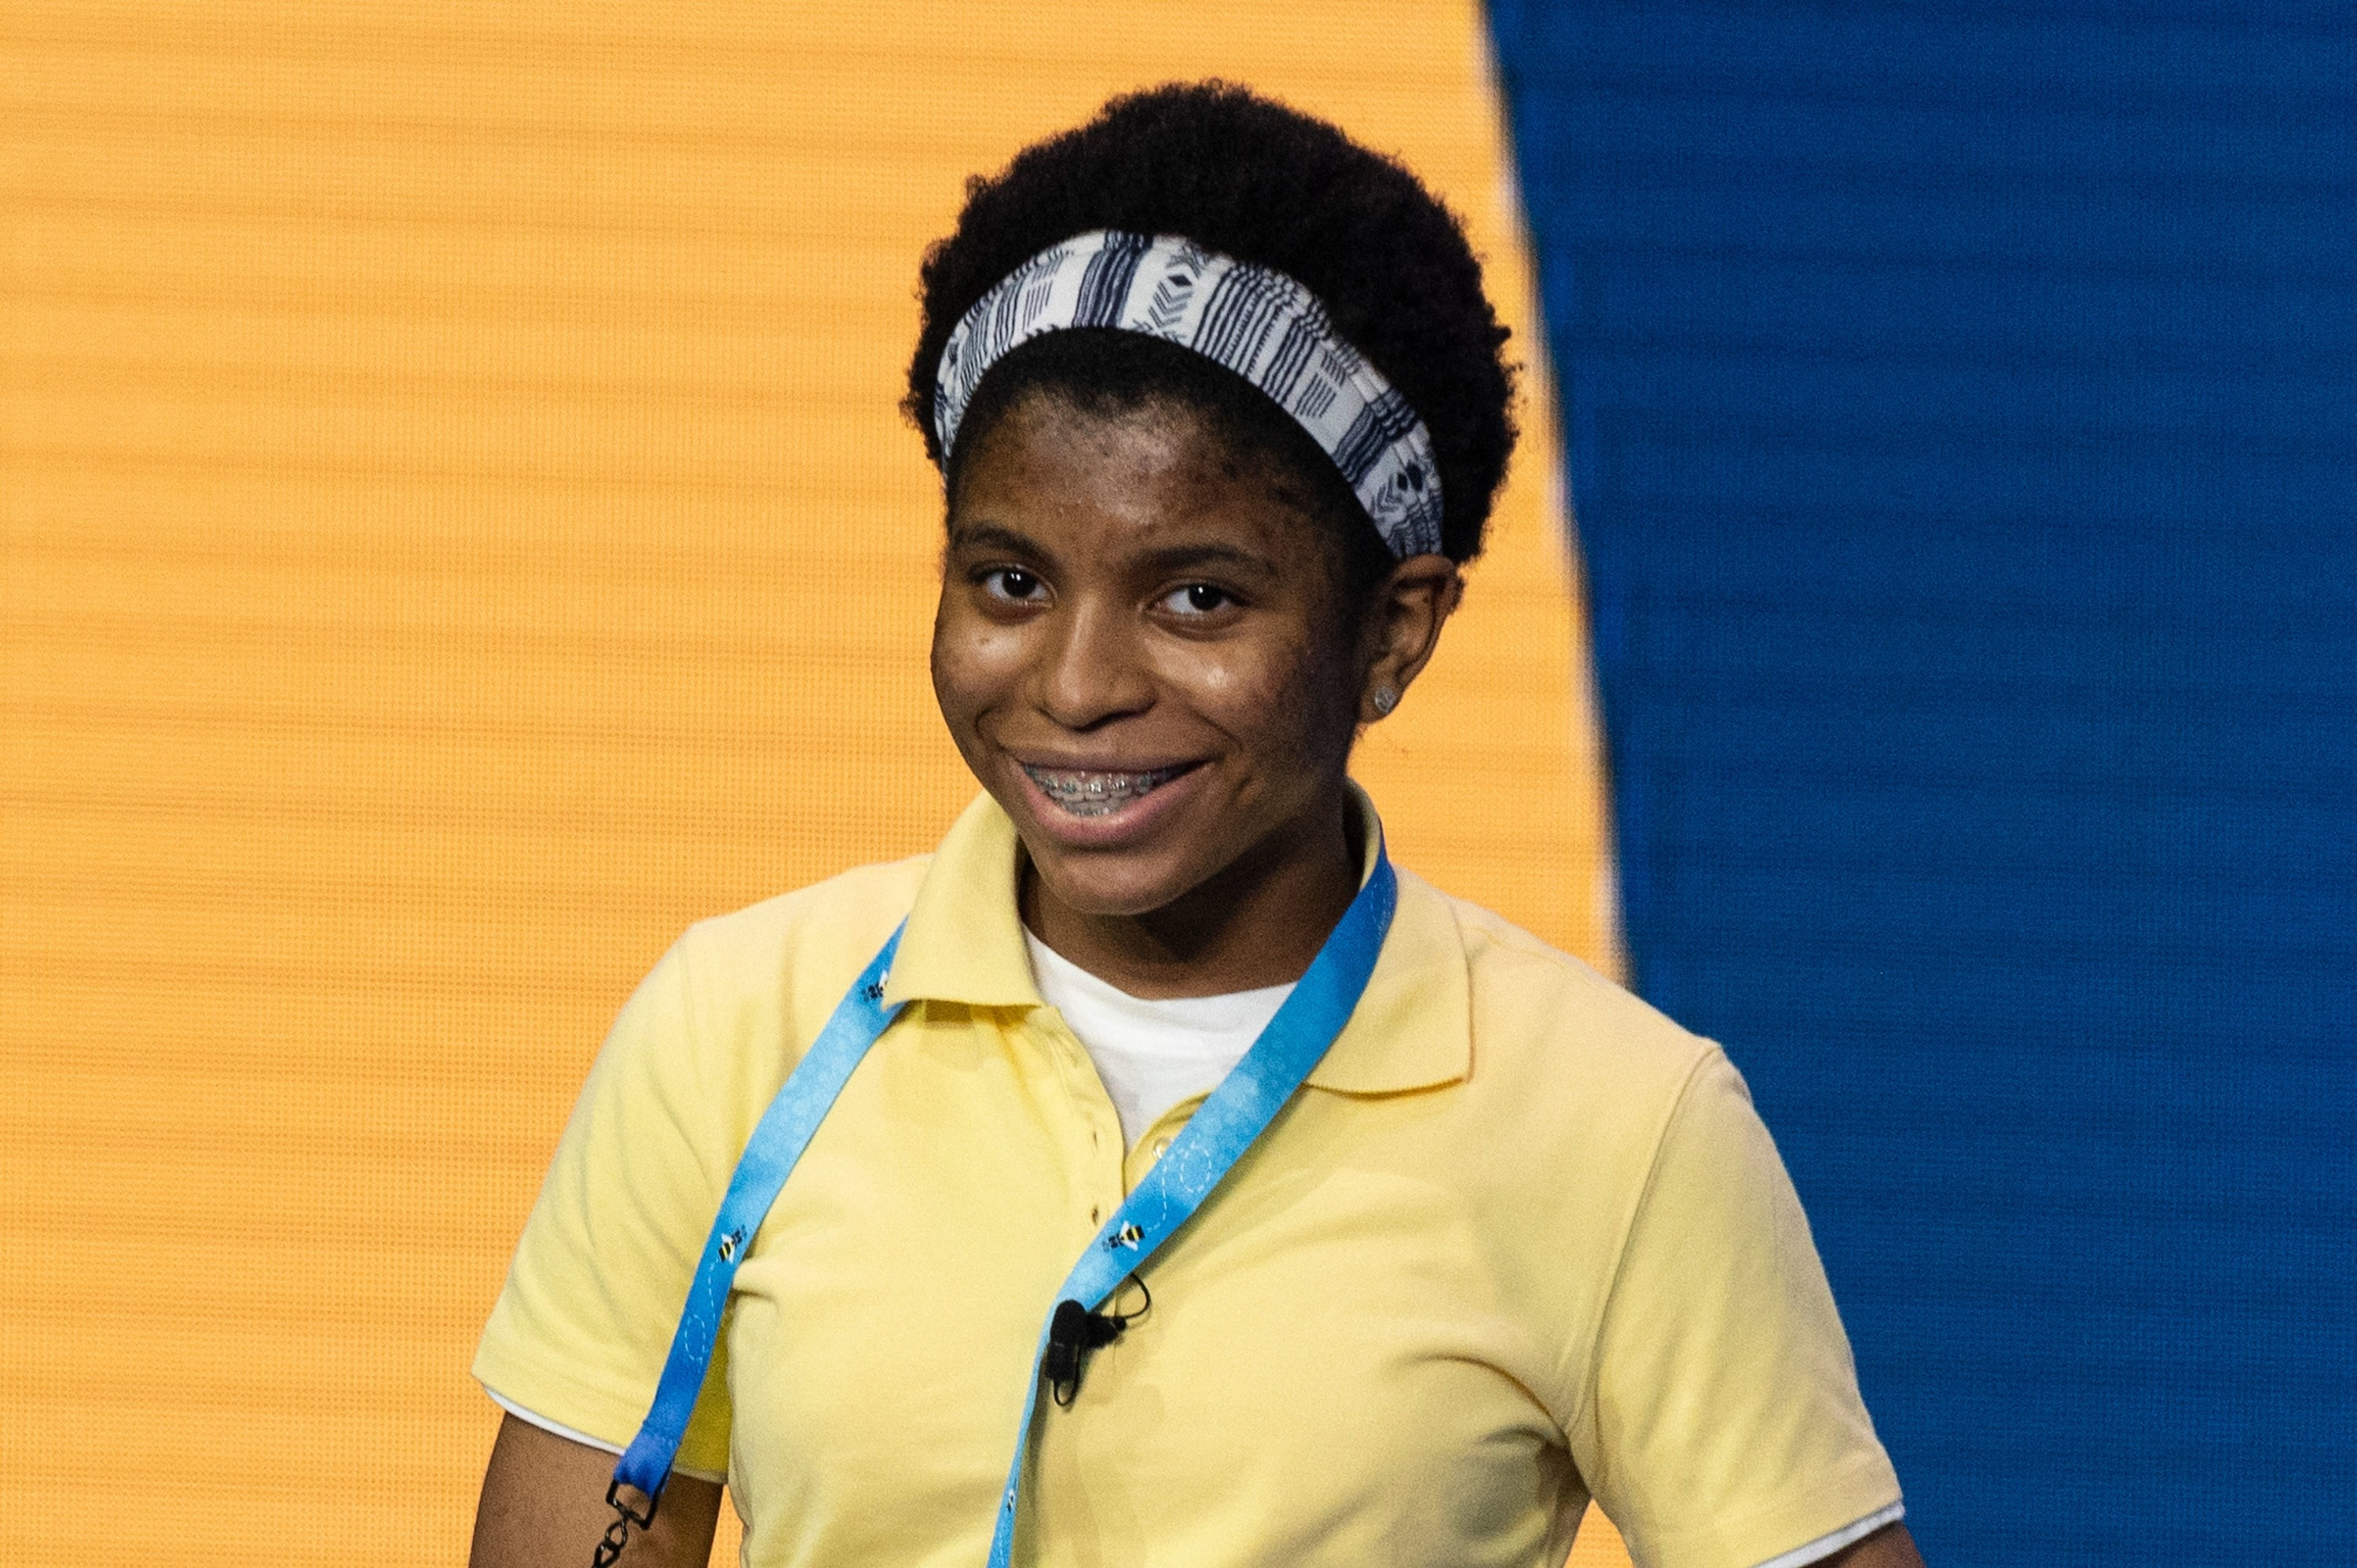 Photo of a smiling teenager with braces wearing a yellow polo shirt and a headband